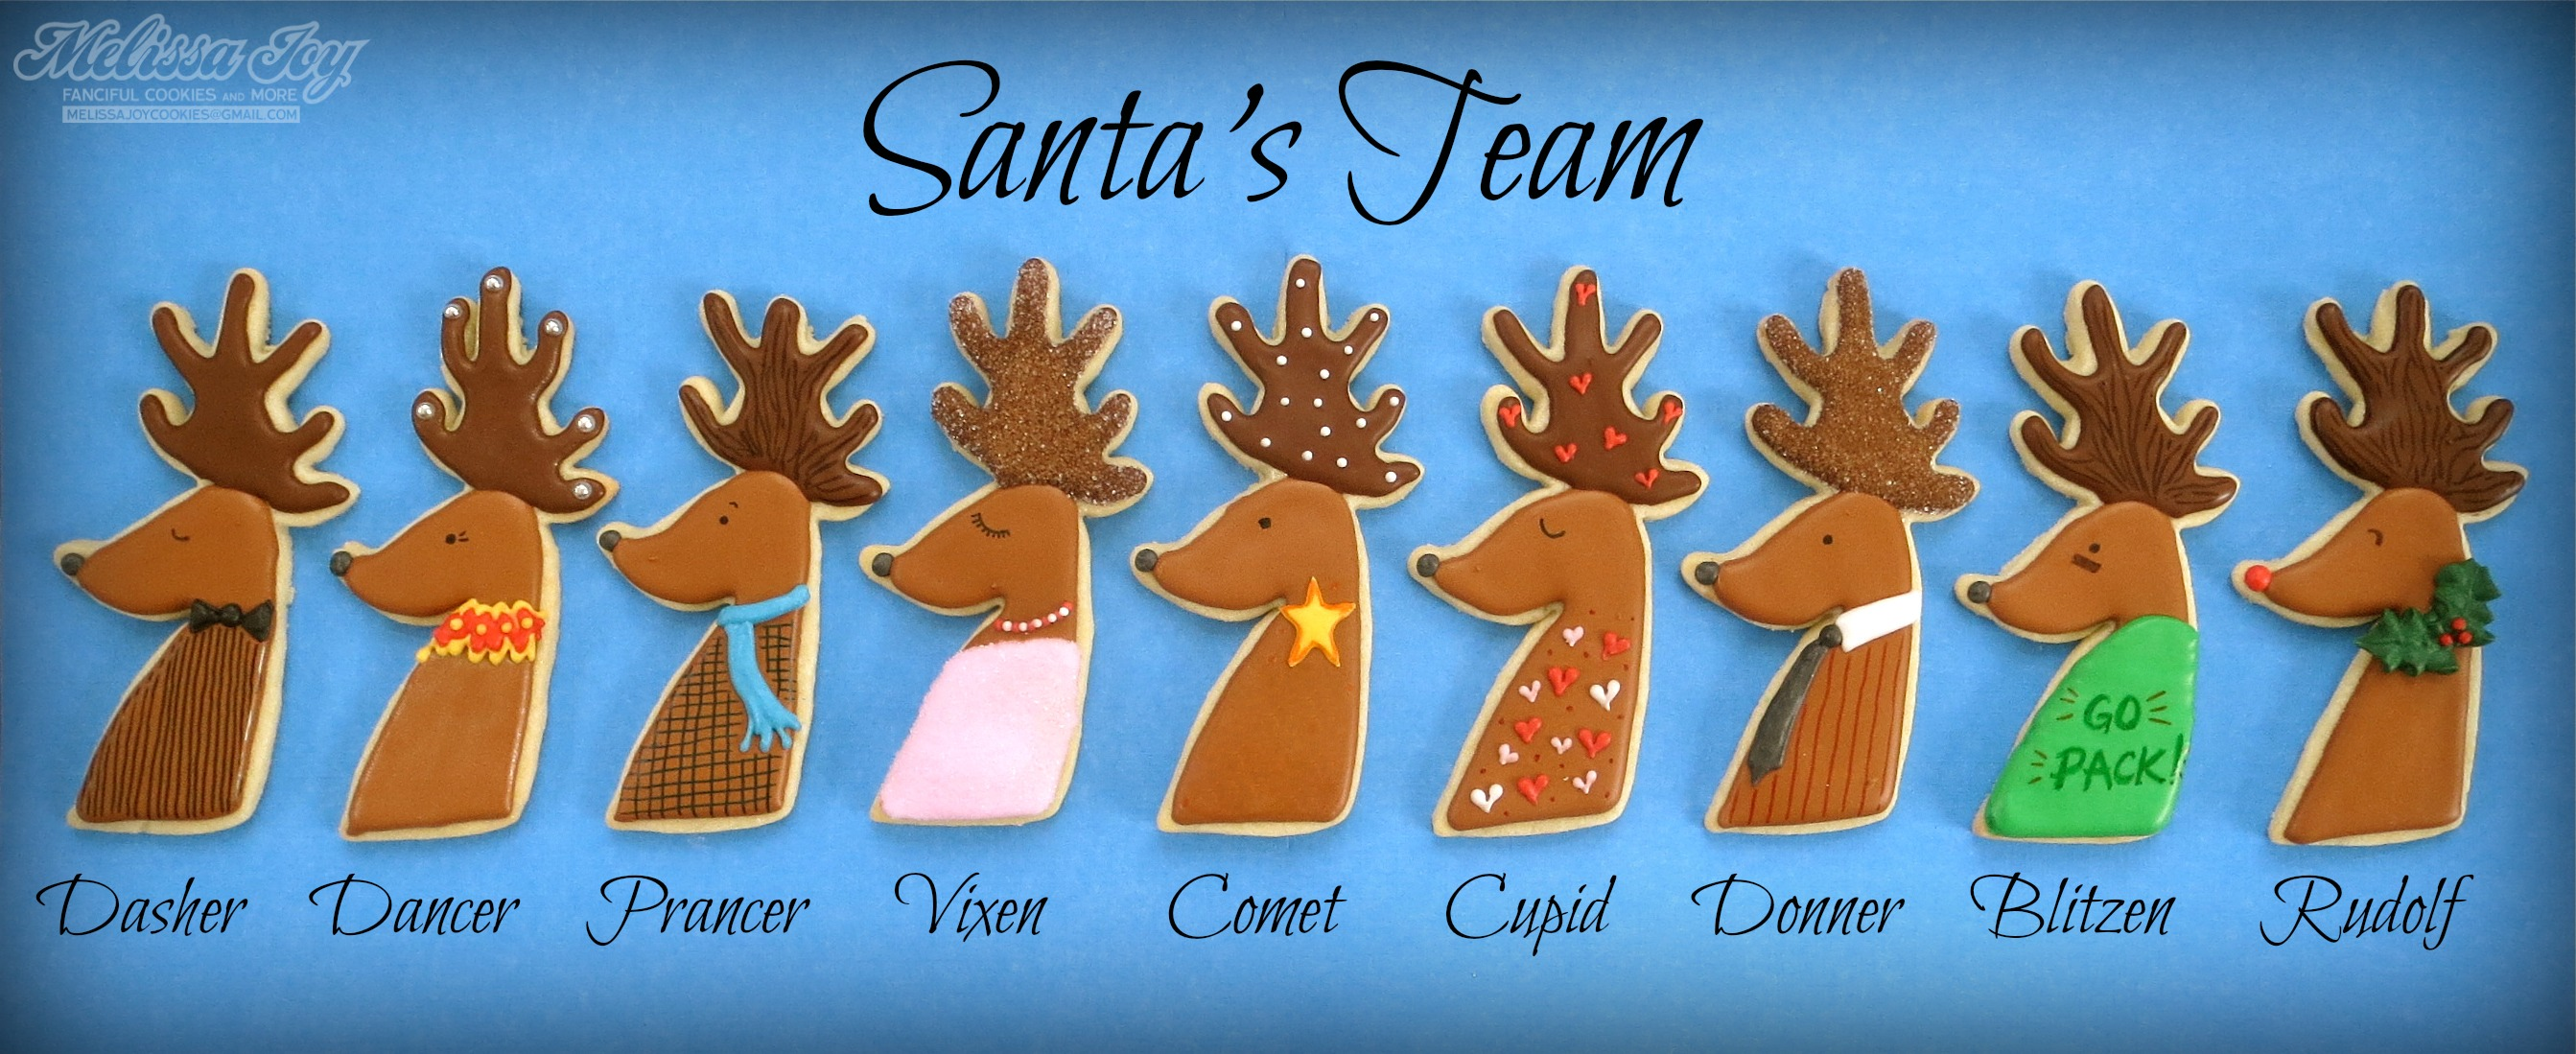 ... santa s reindeer names 1008 x 630 95 kb jpeg santa s eight reindeer